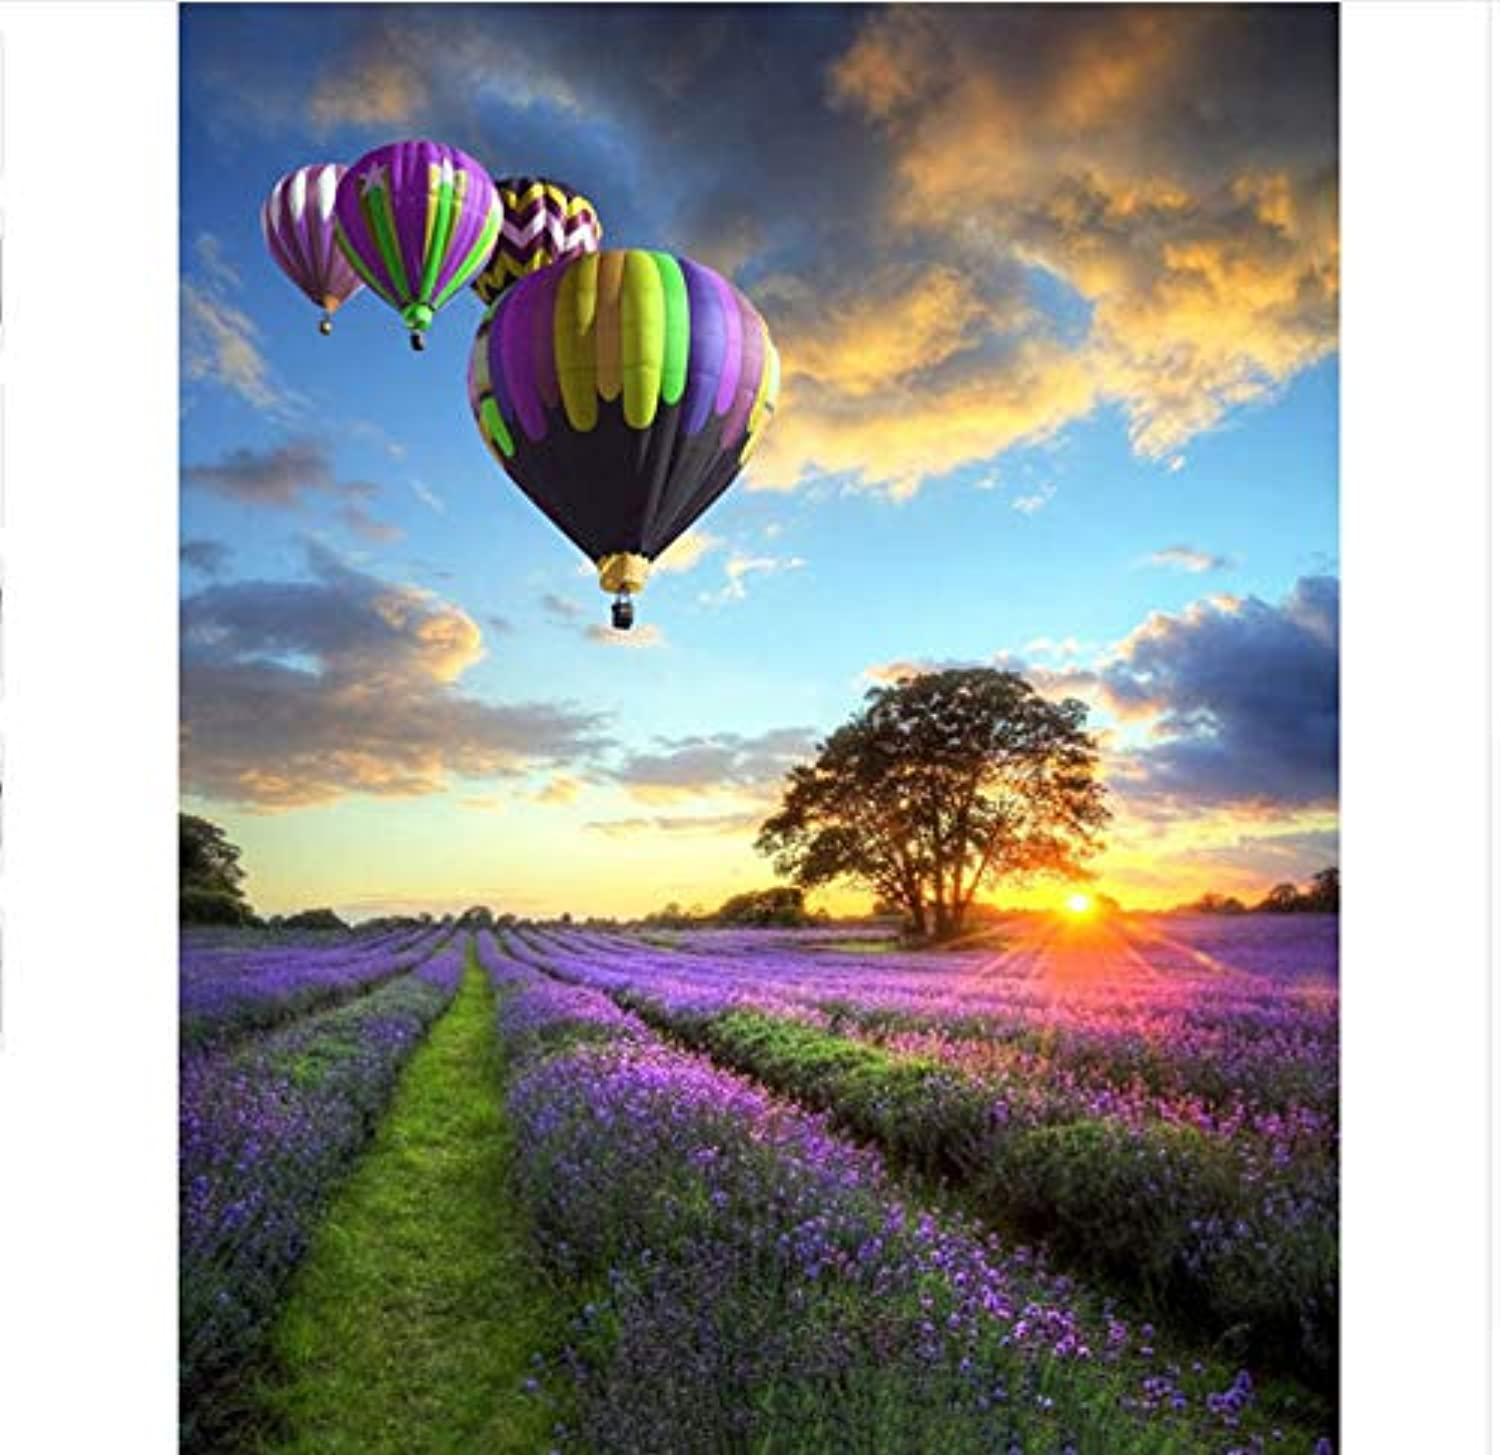 Wgxcc Diy Digital Painting Unframelessromantic Balloon Malen Nach